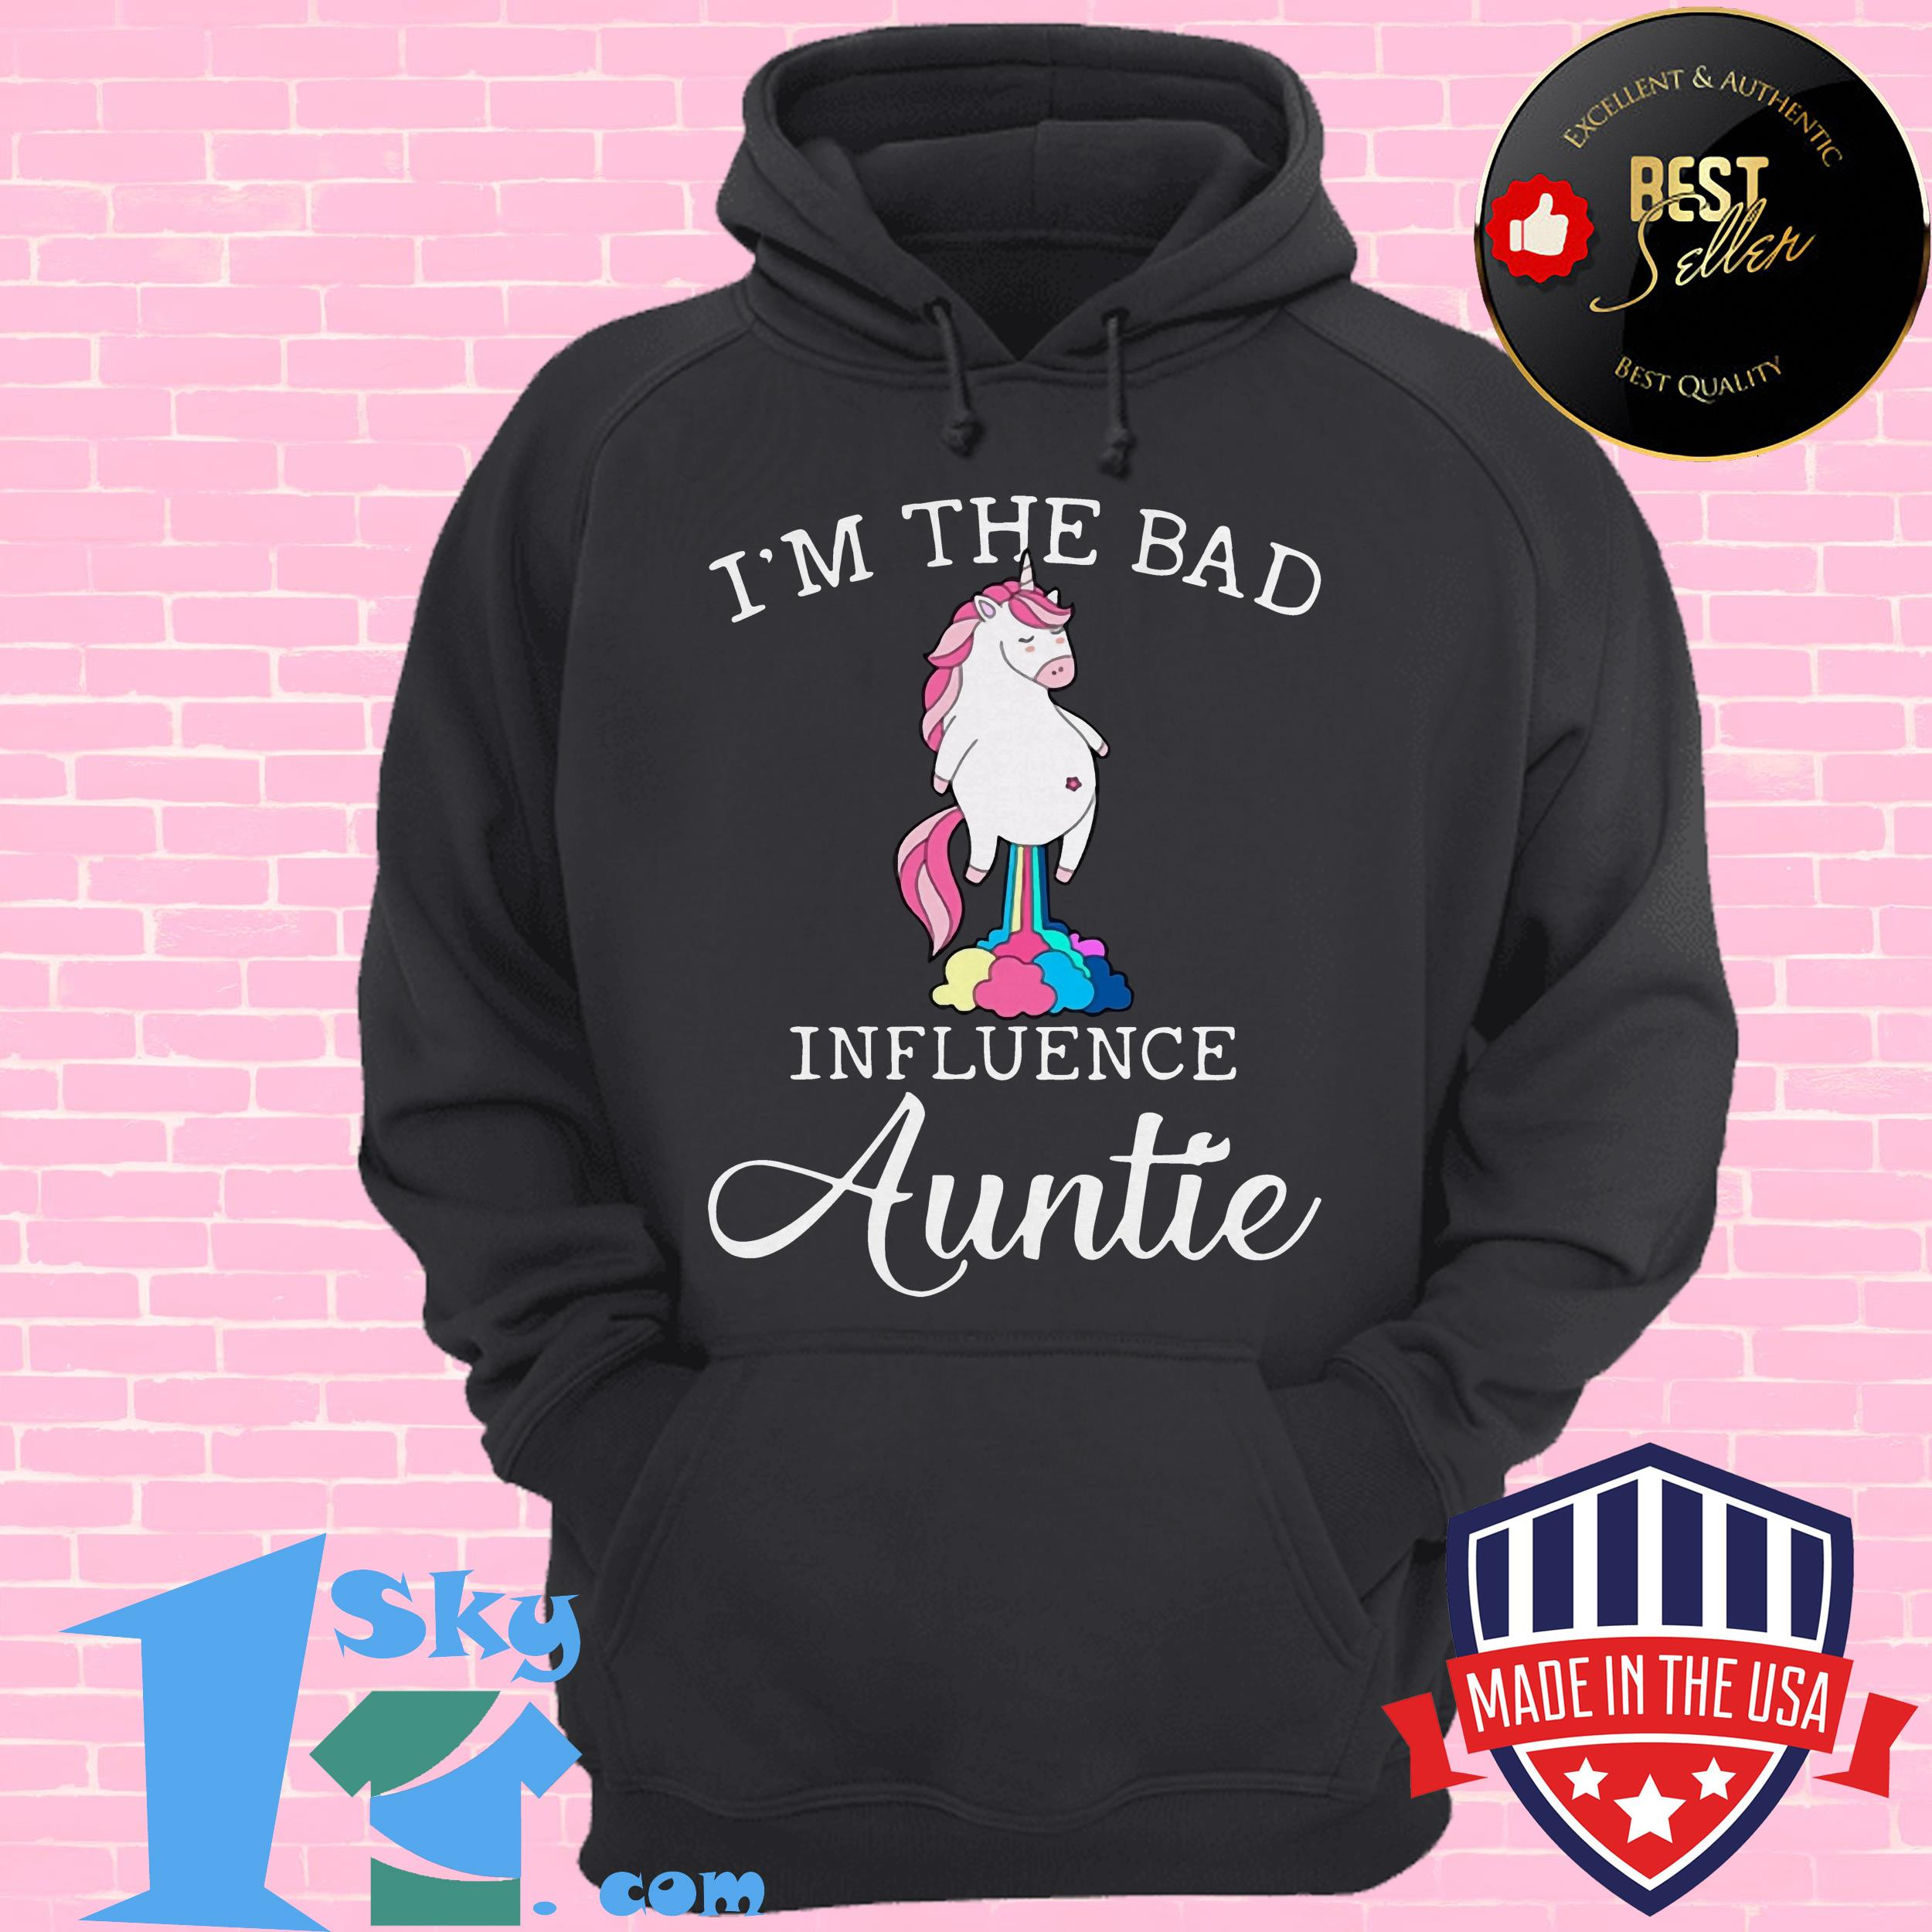 im the bad influence auntie fart unicorn hoodie - I'm The Bad Influence Auntie Fart Unicorn shirt